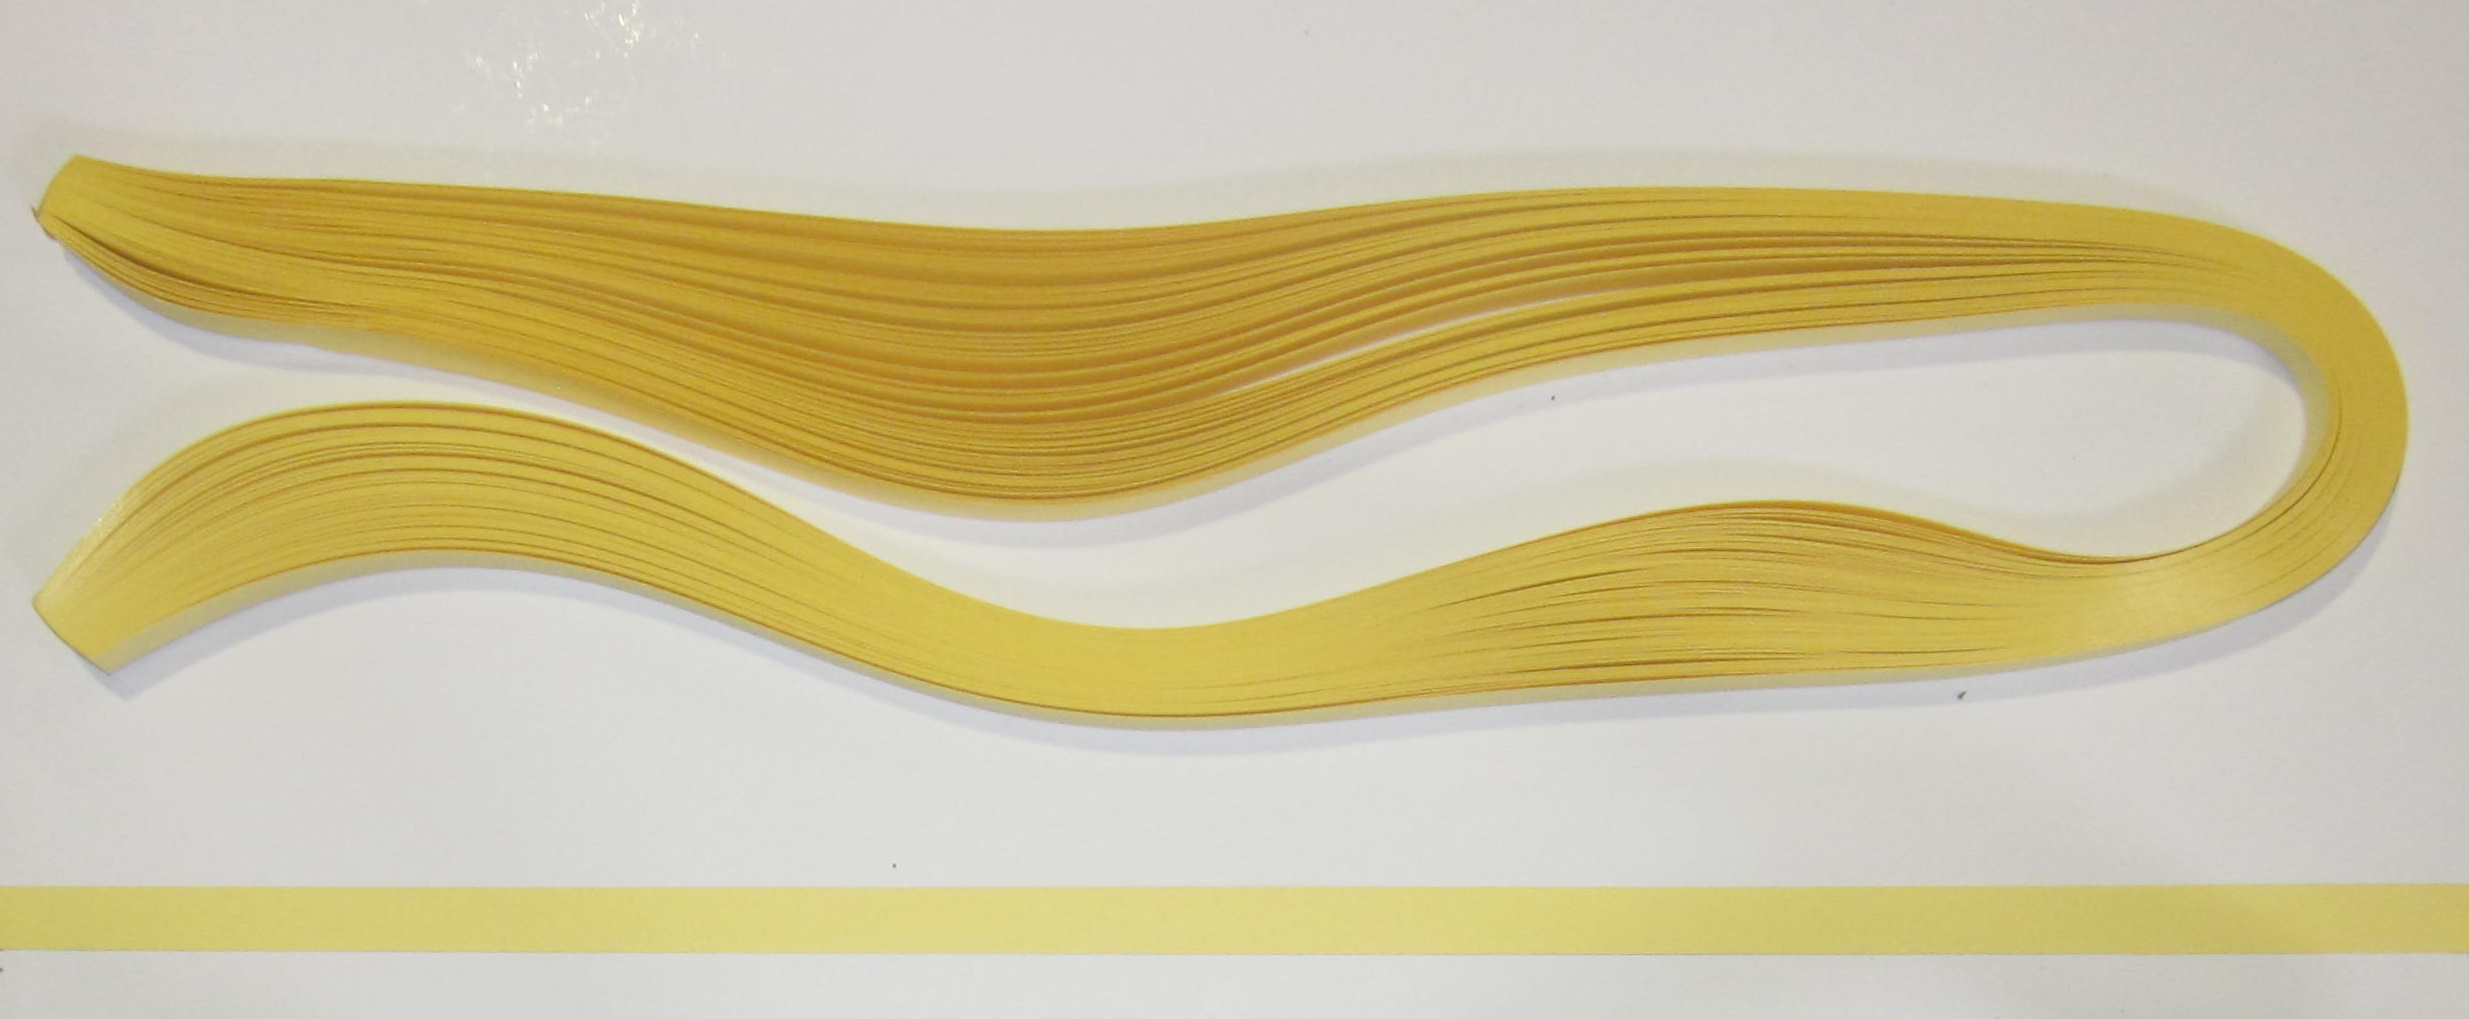 PAPEL QUILLING 322, 9MM. AMARILLO CREMA